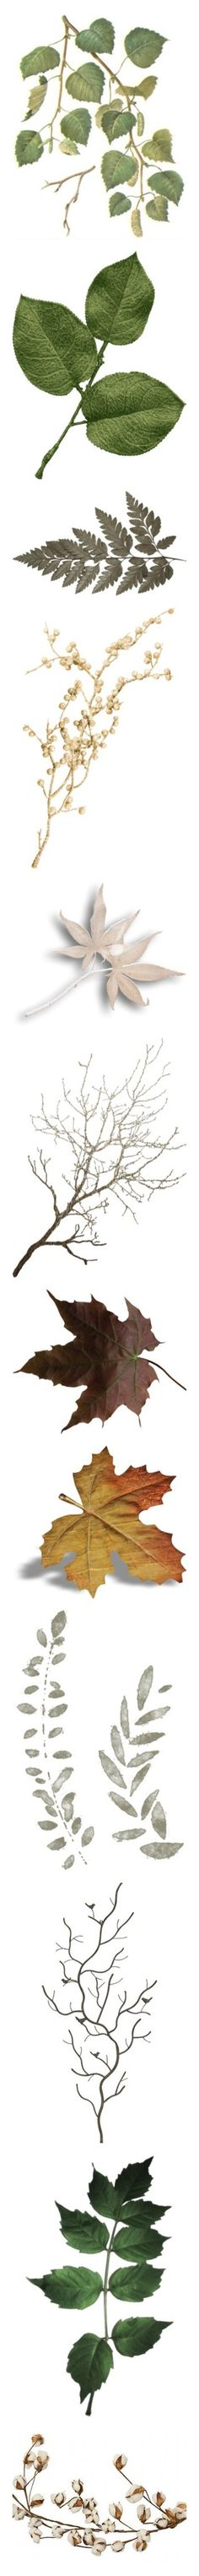 """~ Branches, Trees, Leaves, And Vines ~"" by romantiquechic ❤ liked on Polyvore featuring flowers, fillers, plants, nature, backgrounds, borders, picture frame, fillers - green, leaves and branch"